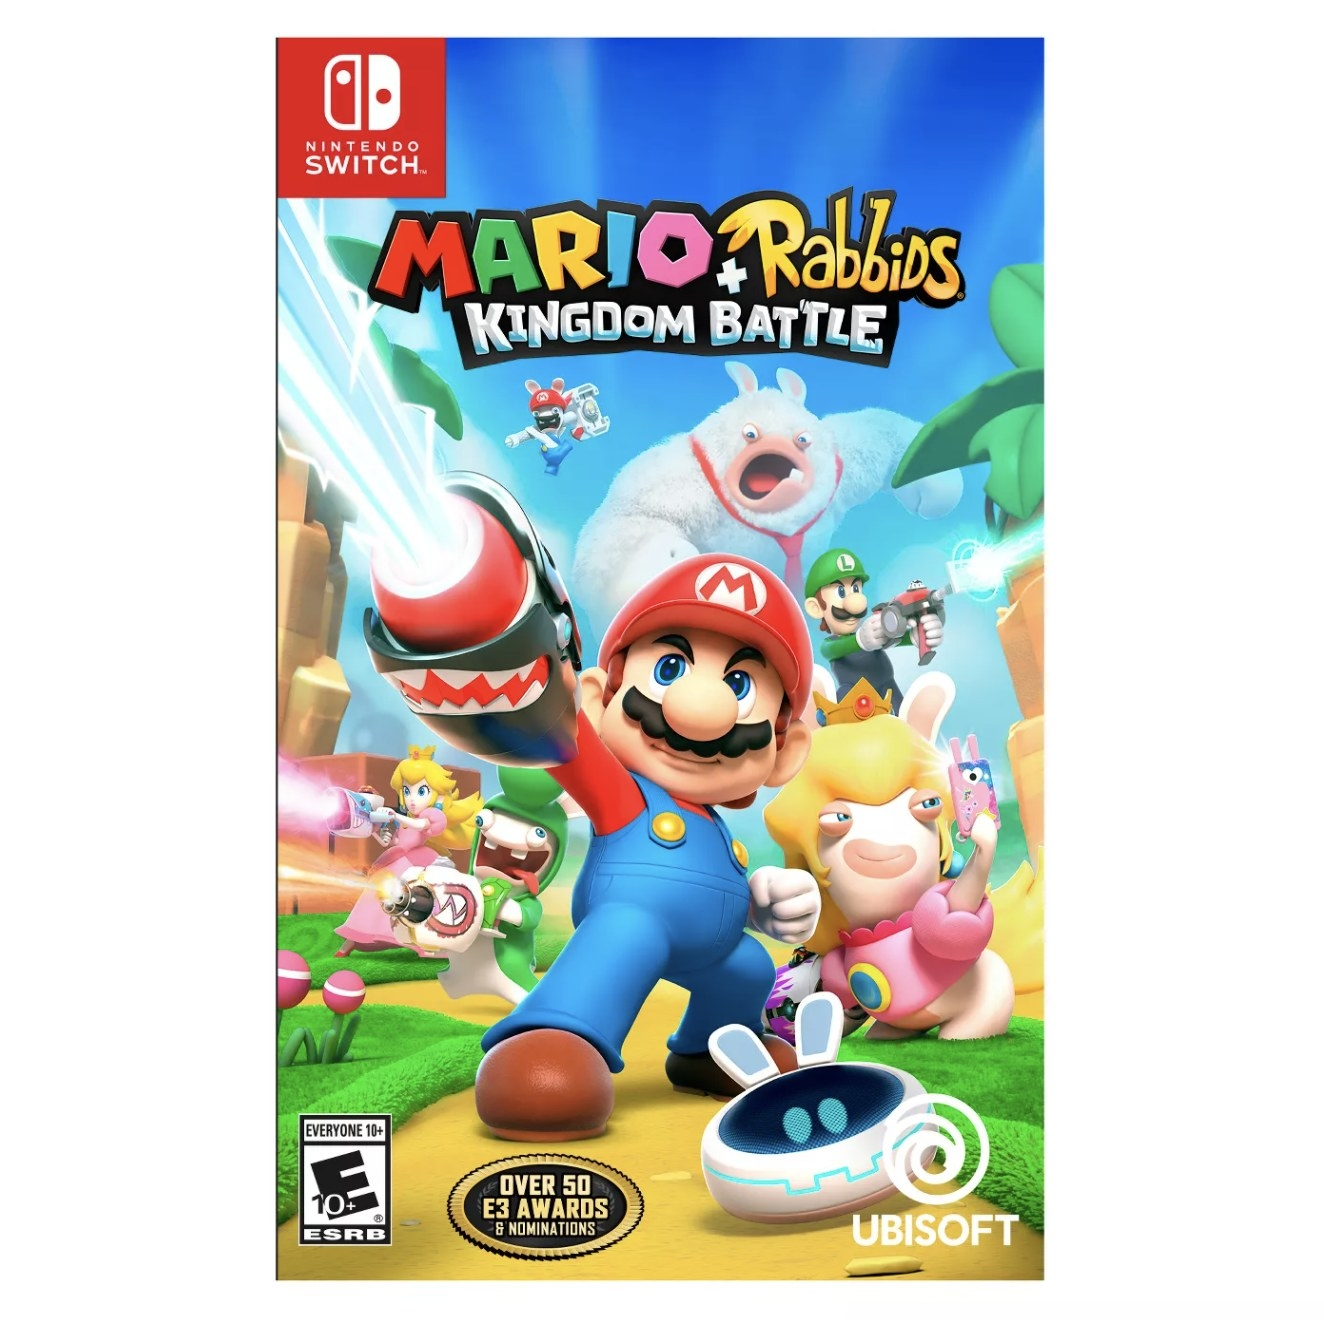 Cover art for Mario and Rabbids Kingdom Battle